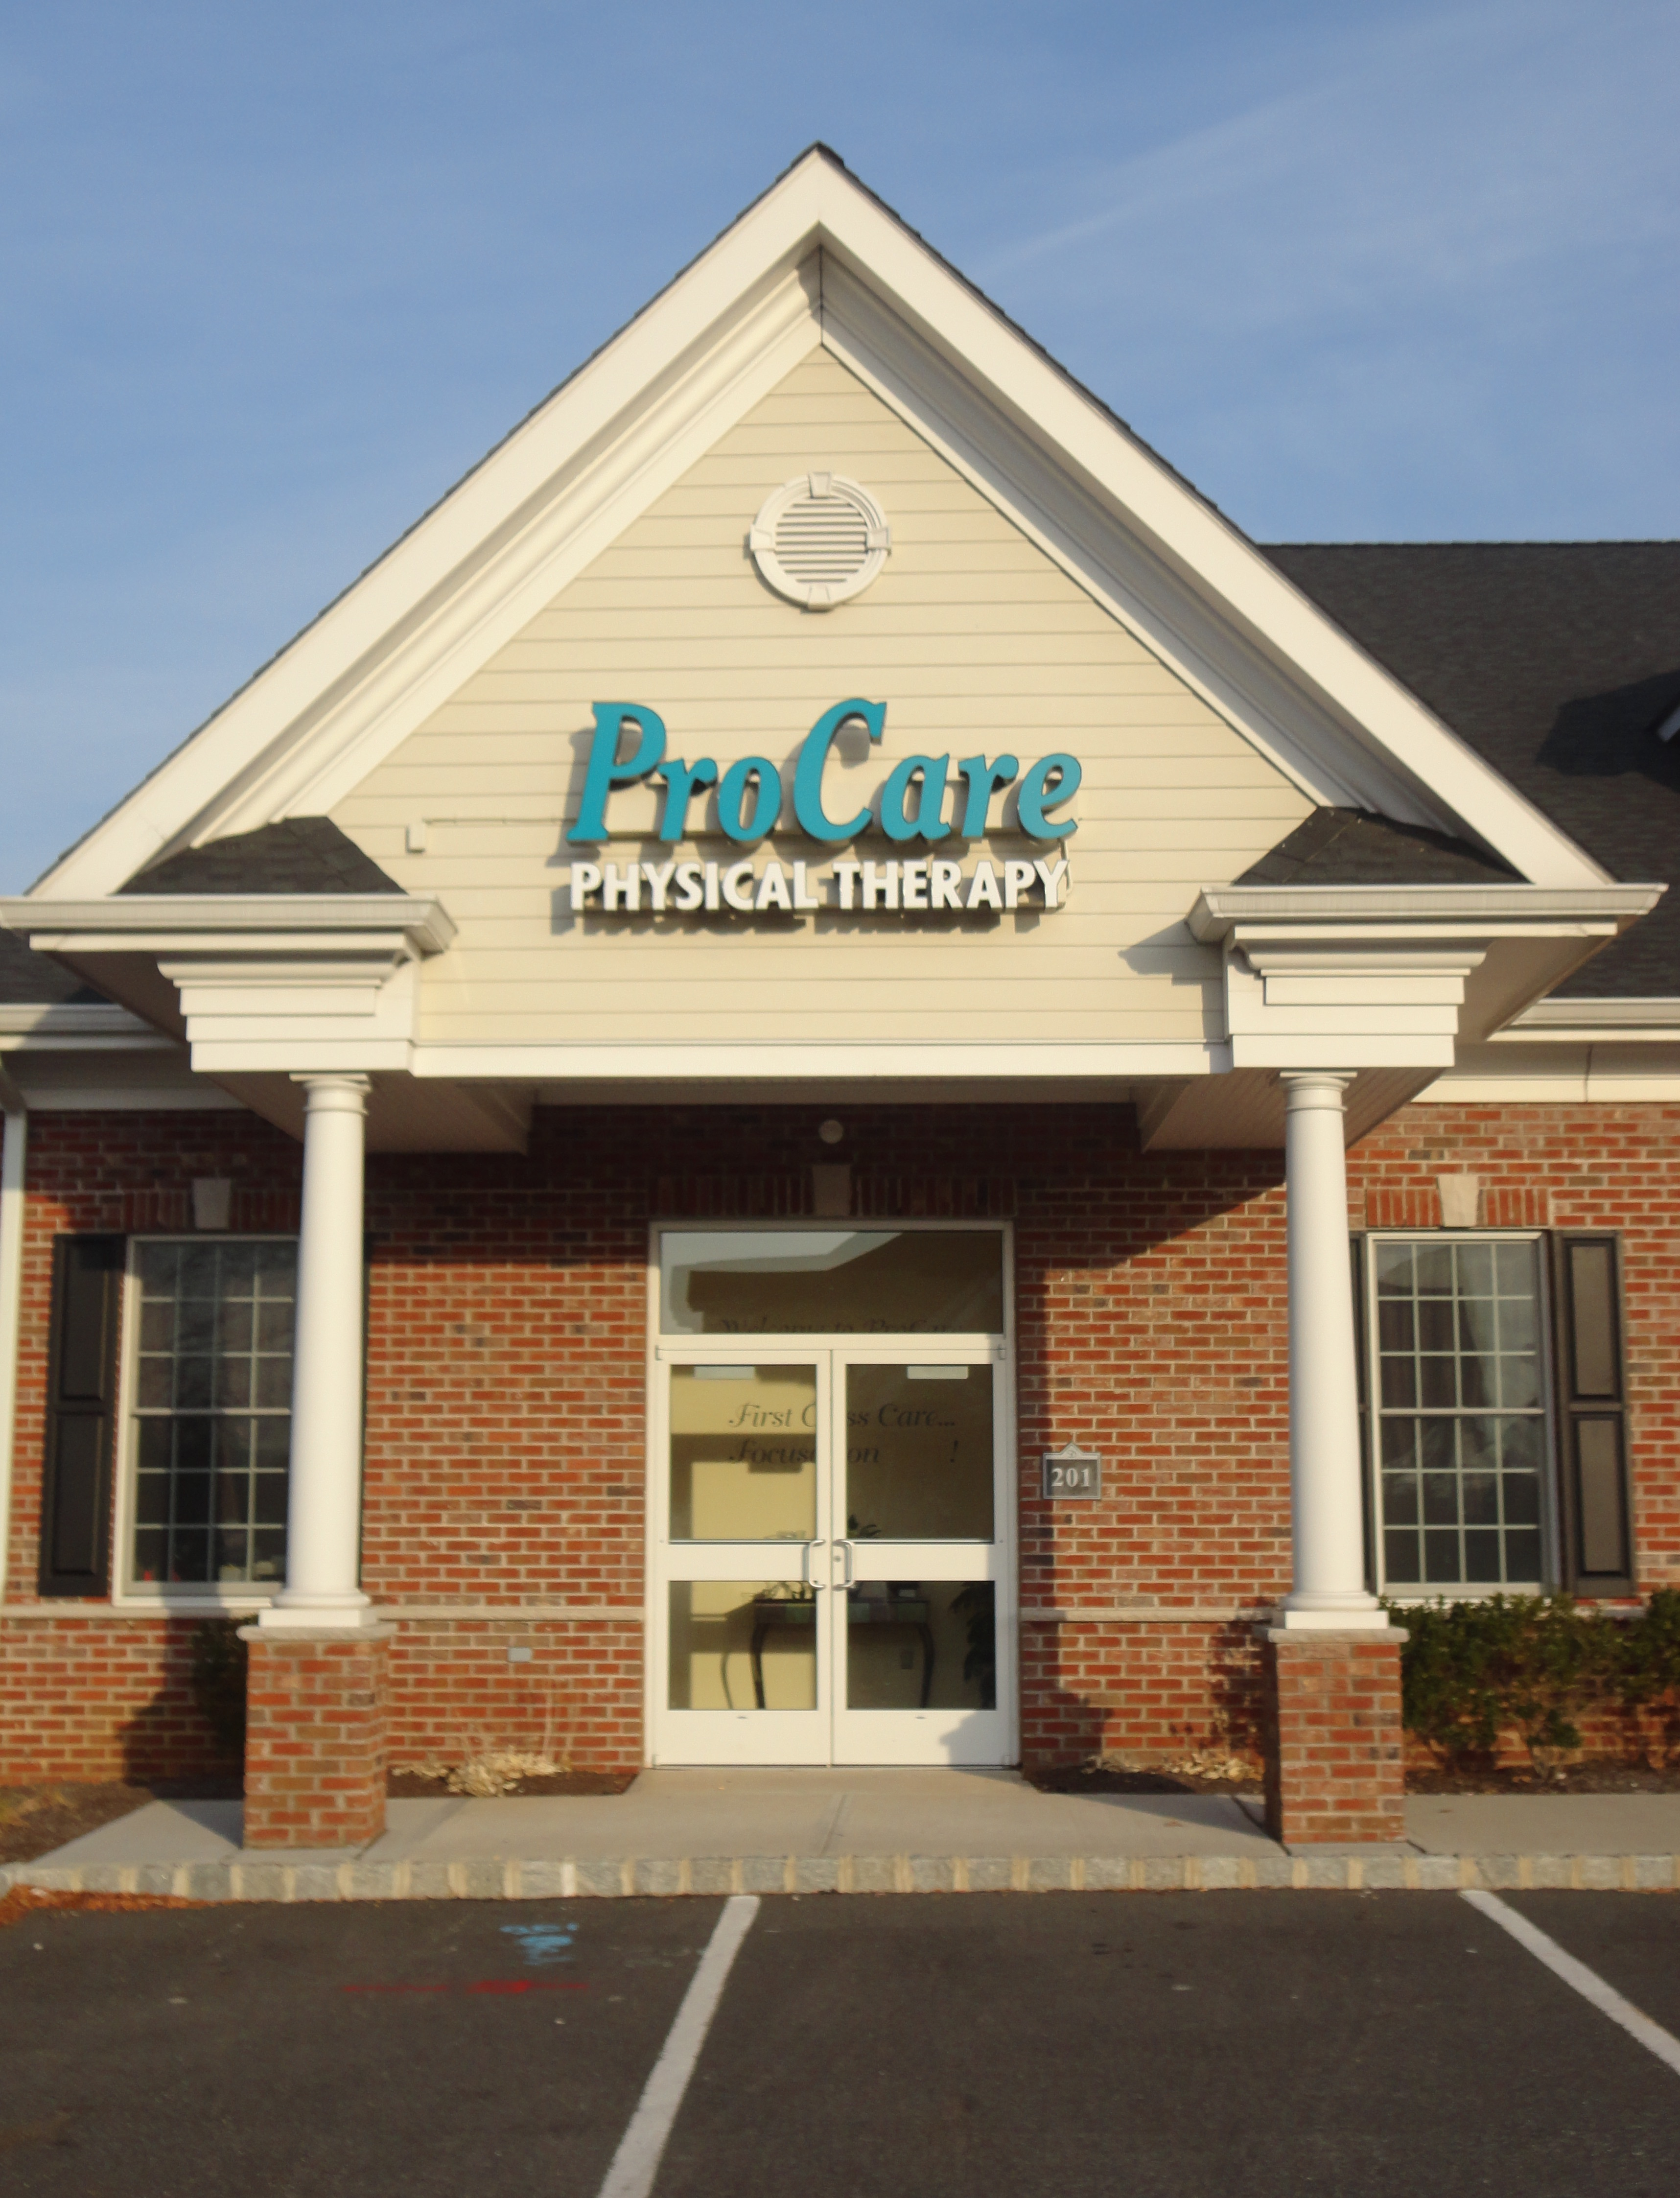 ProCare Physical Therapy – First Class Care, Focused on You